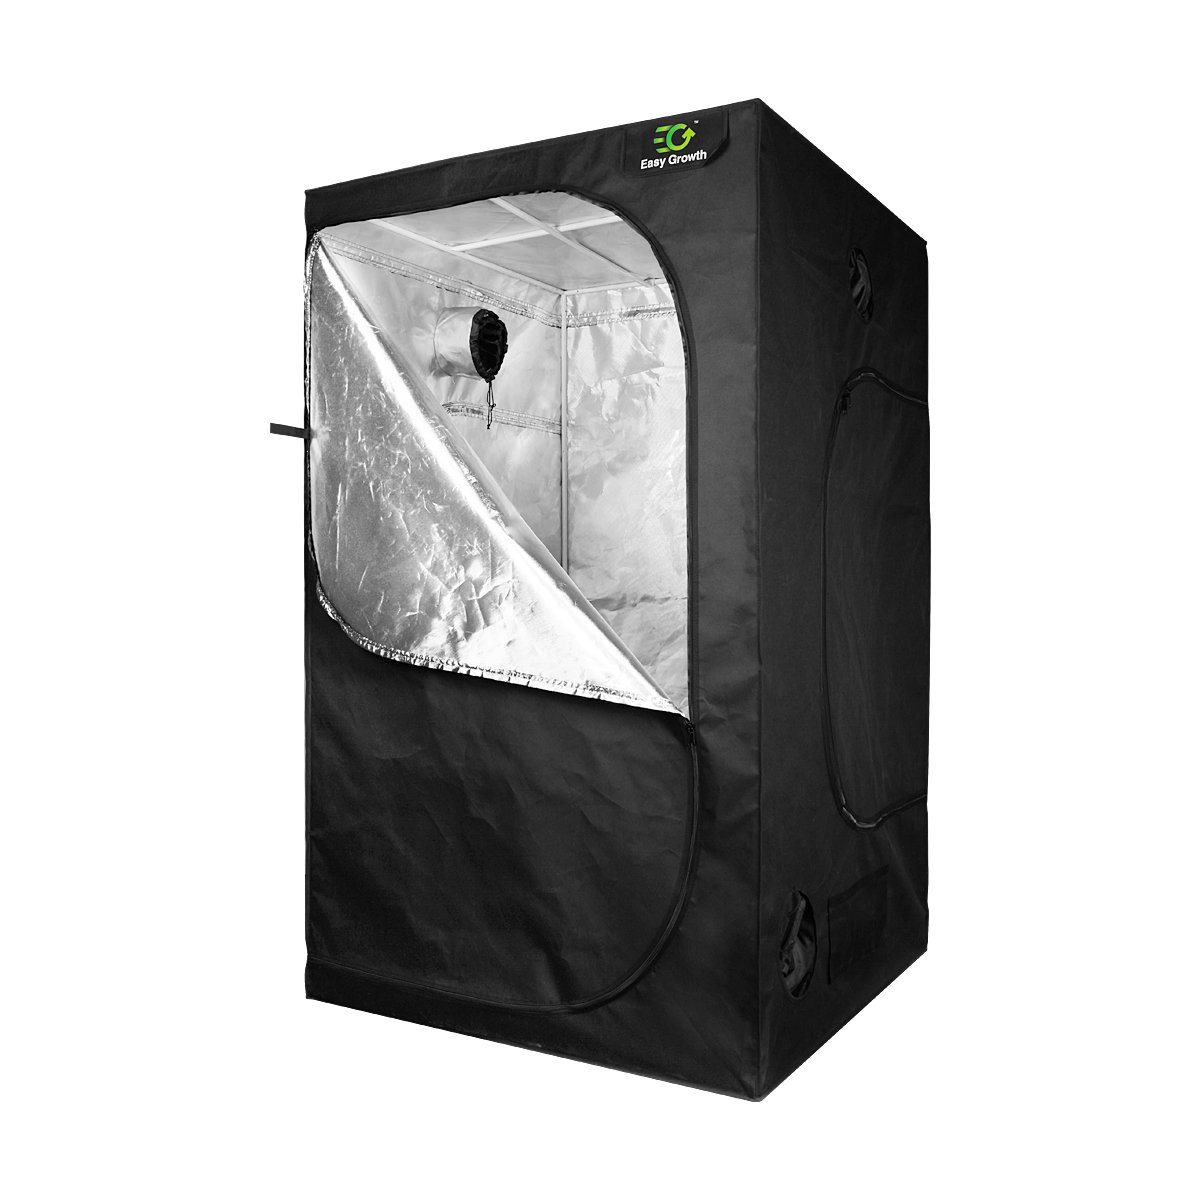 EasyGrowth 40''x40''x80'' Reflective Mylar Hydroponic Grow Tent with Waterproof Floor Tray for Indoor Plant Growing